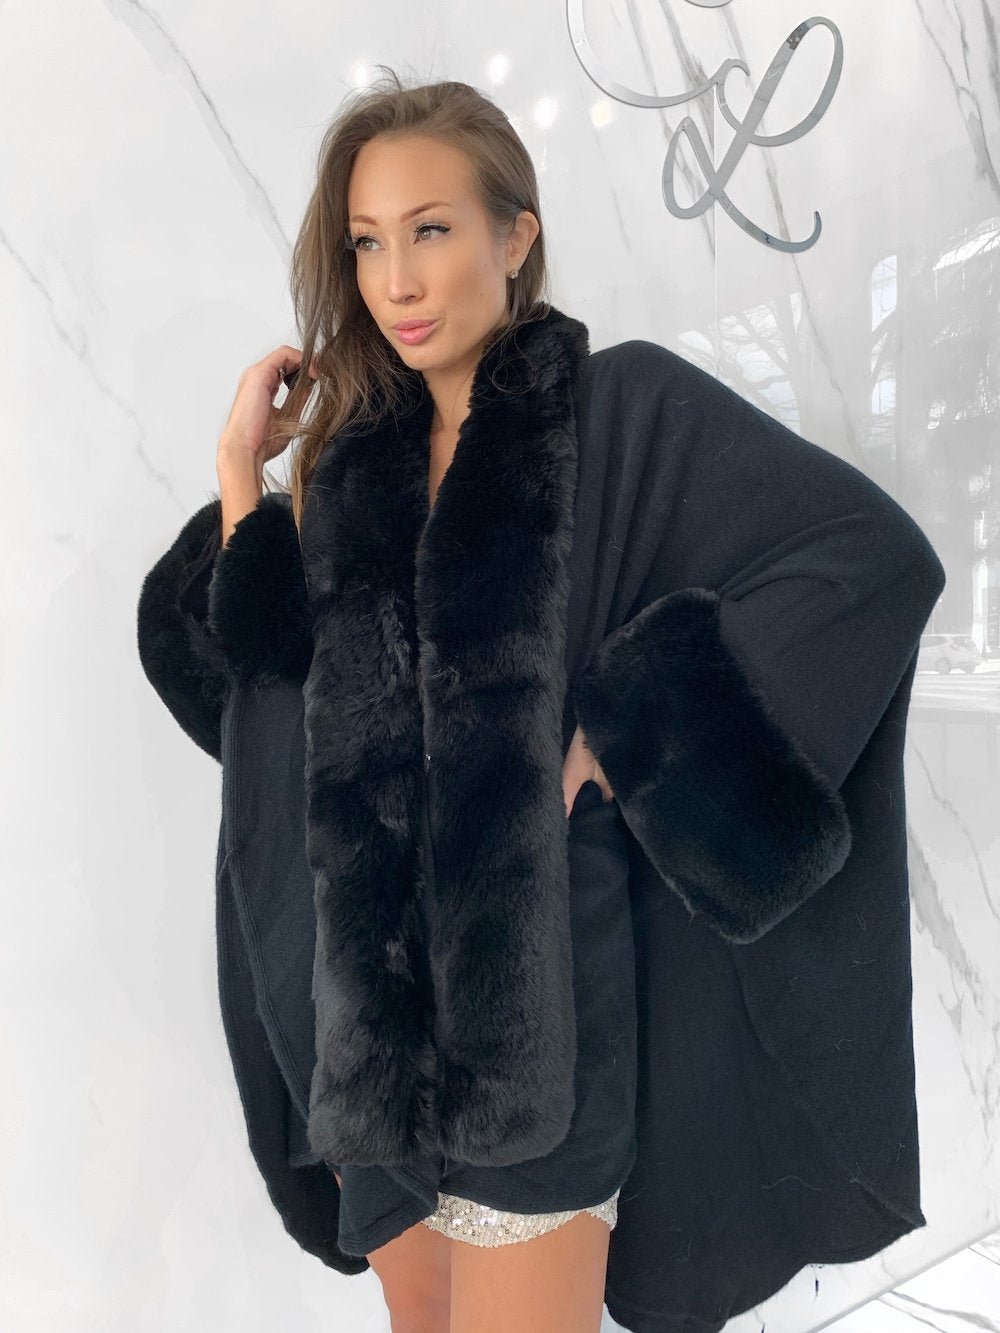 Dova Coat, Women's Black Coats